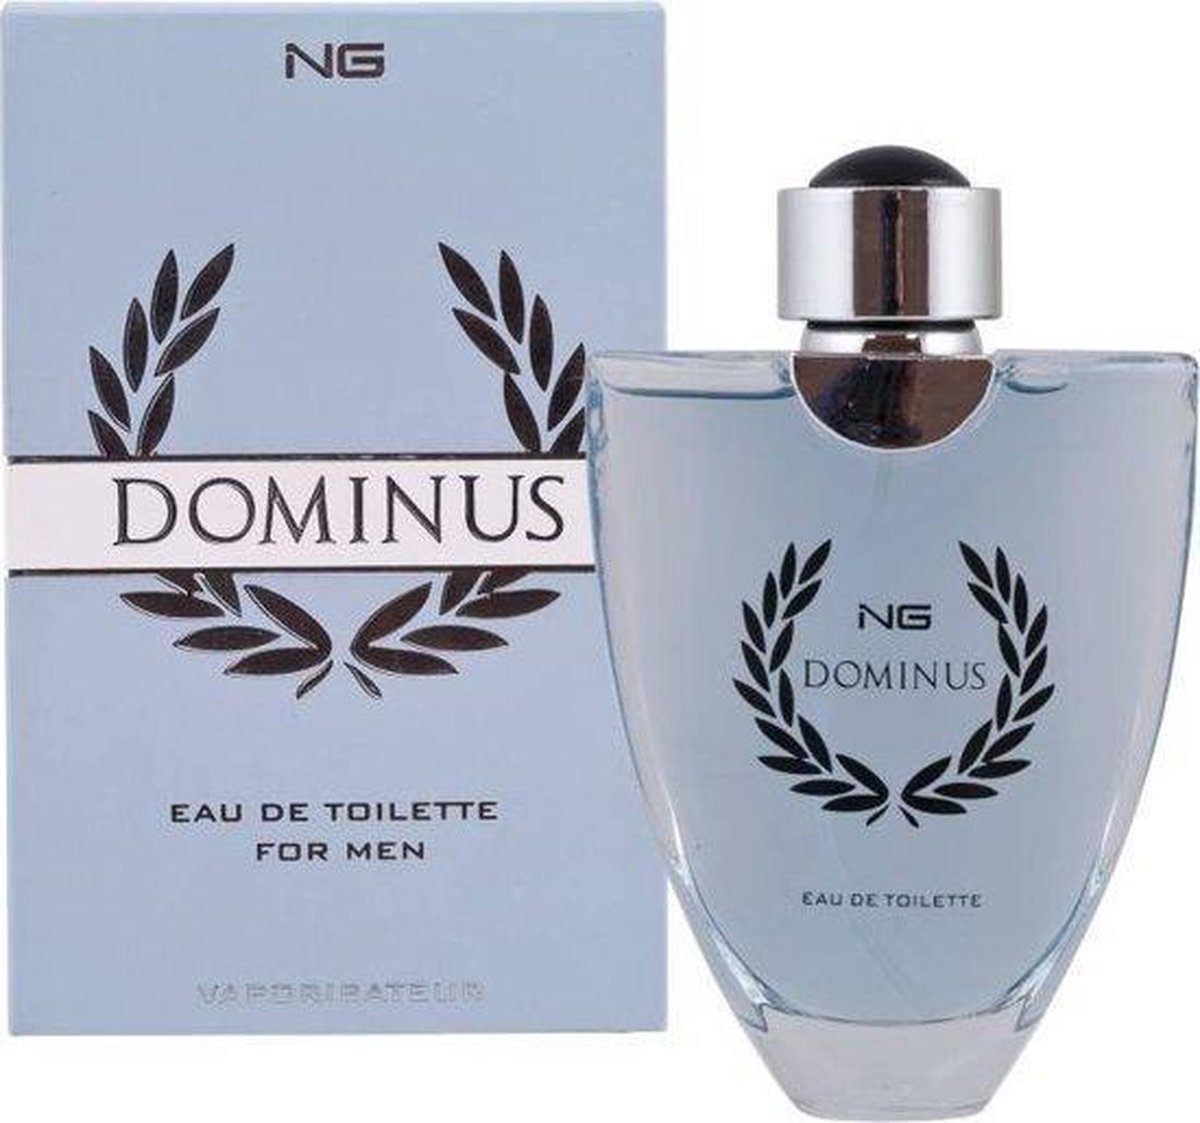 NG Dominus Eau De Toilette 80 ml - Next Generation